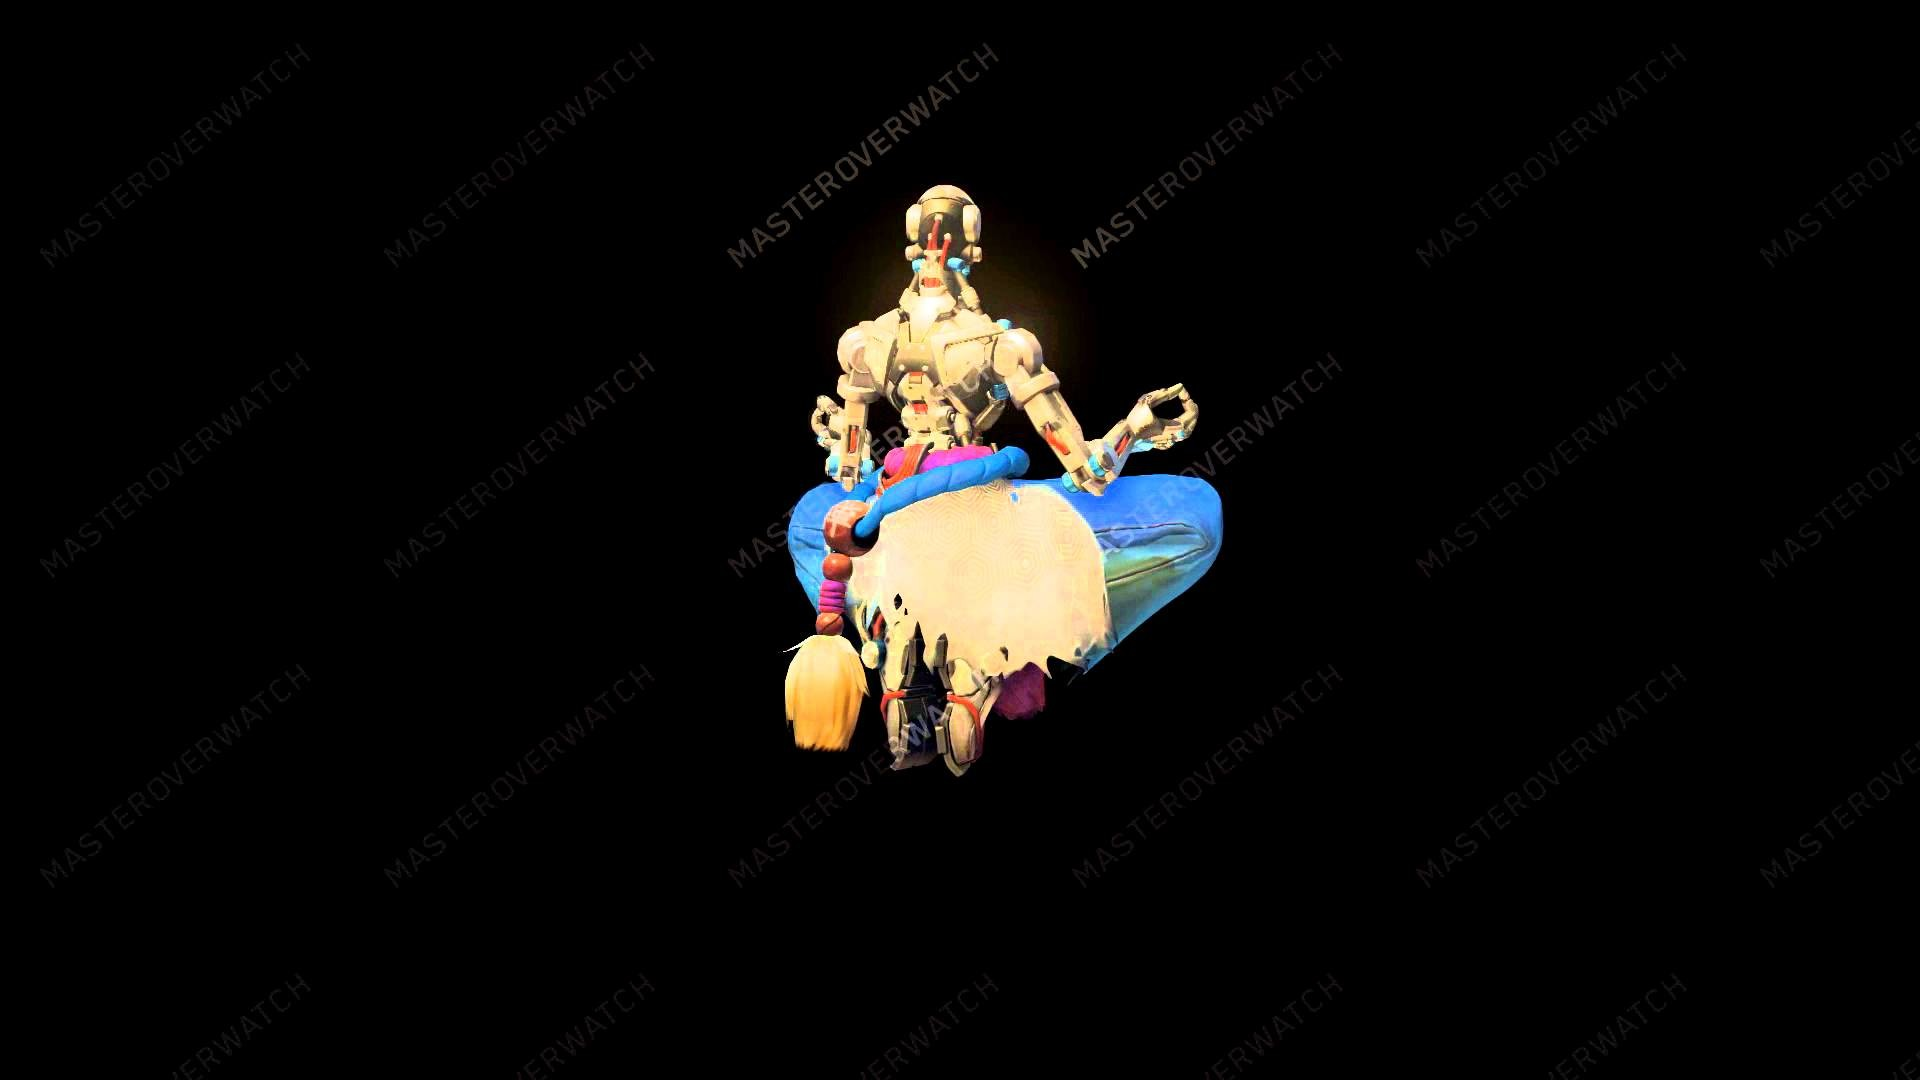 1920x1080 HD Water Zenyatta Overwatch Skin